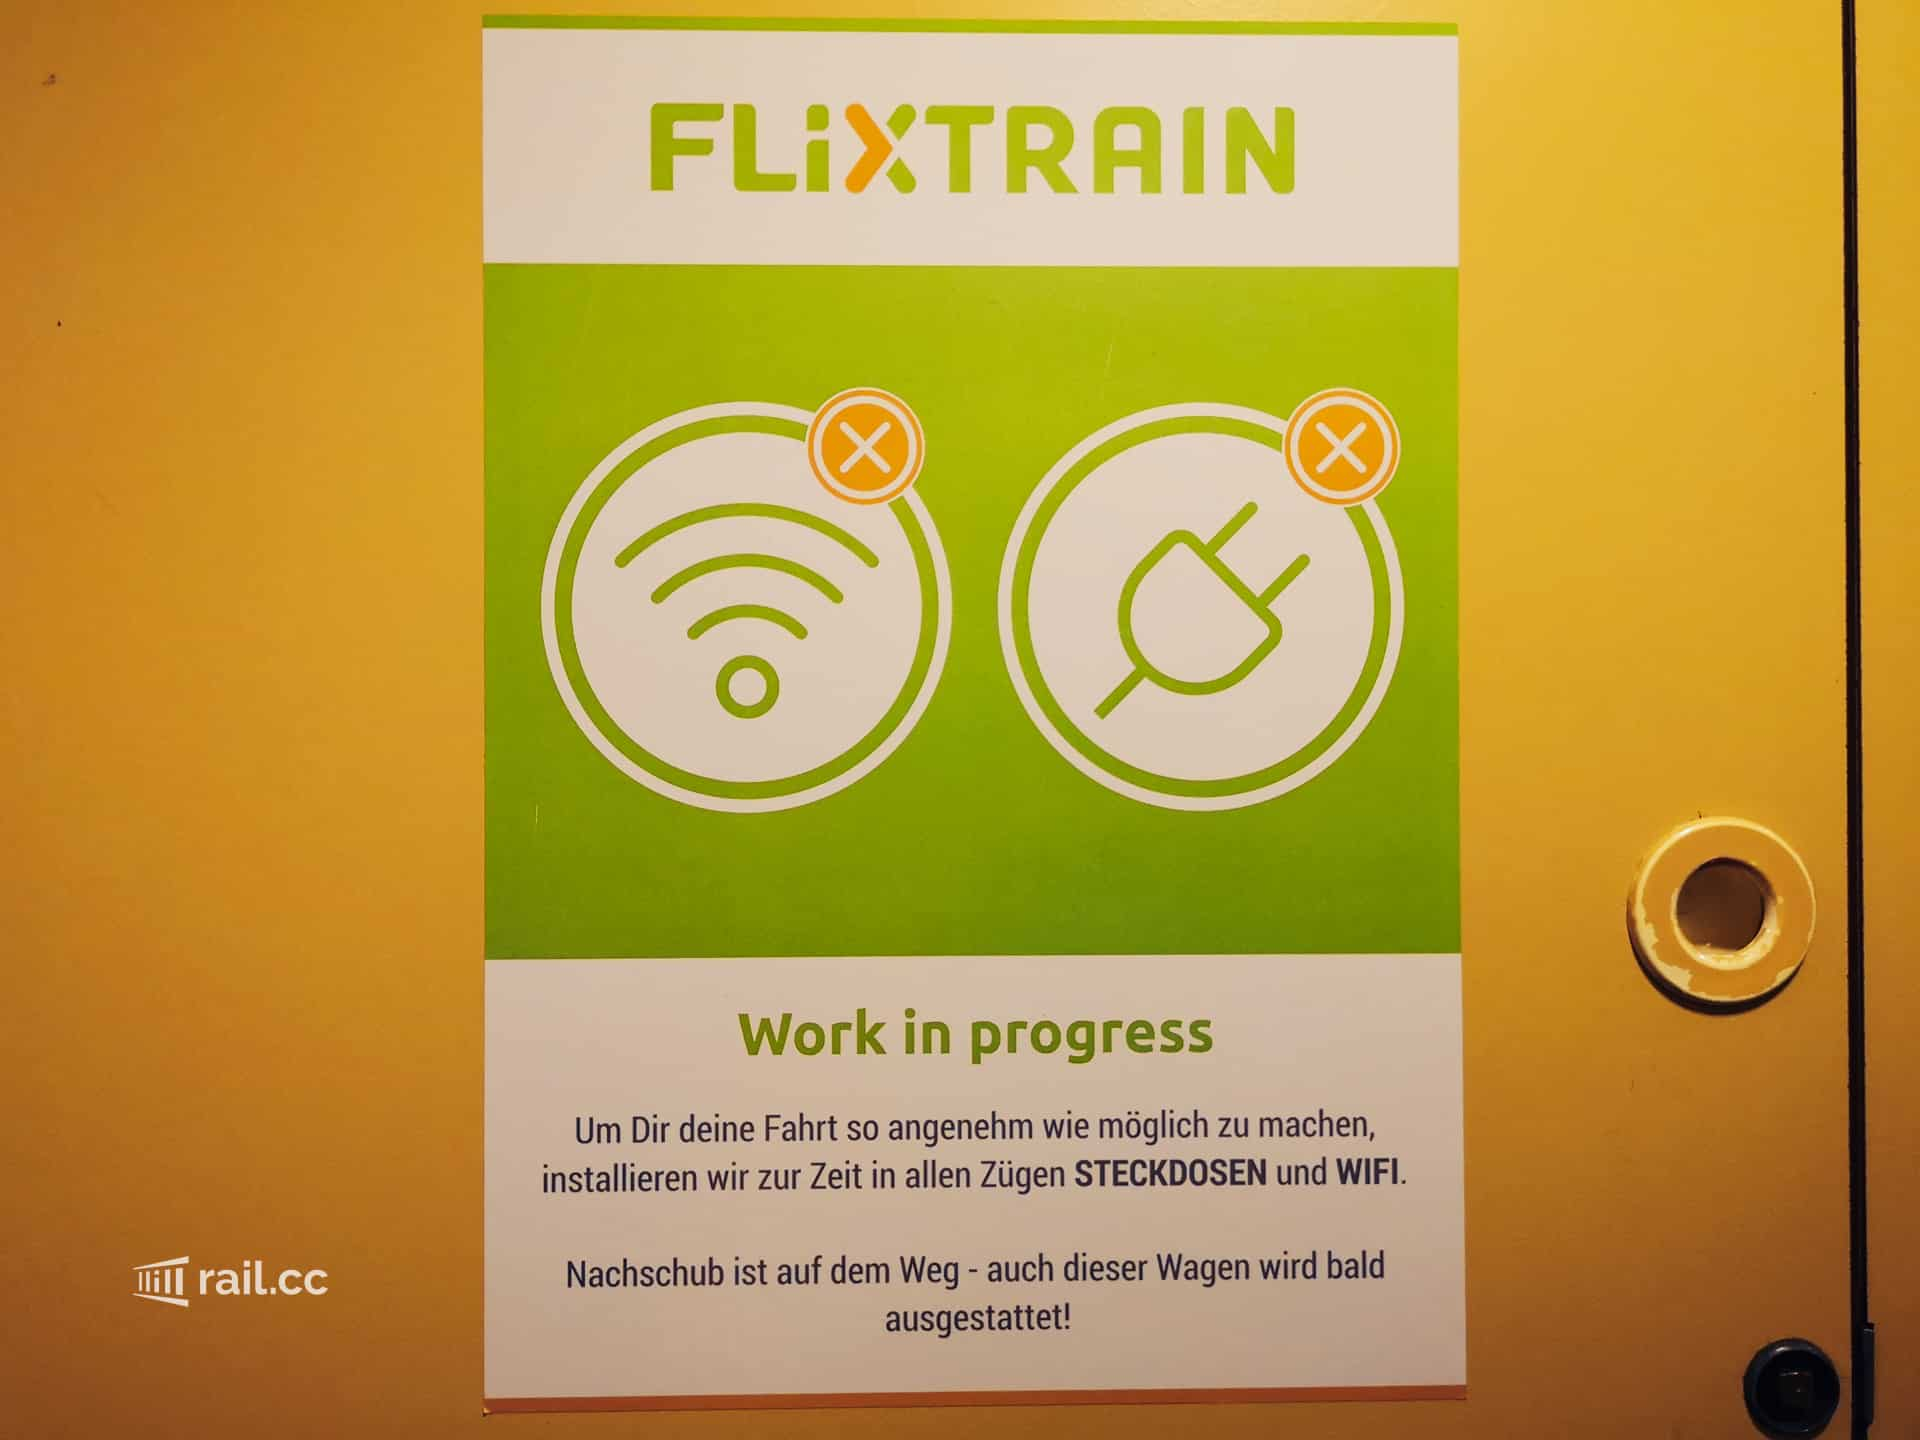 Flixtrain without wifi and electricity